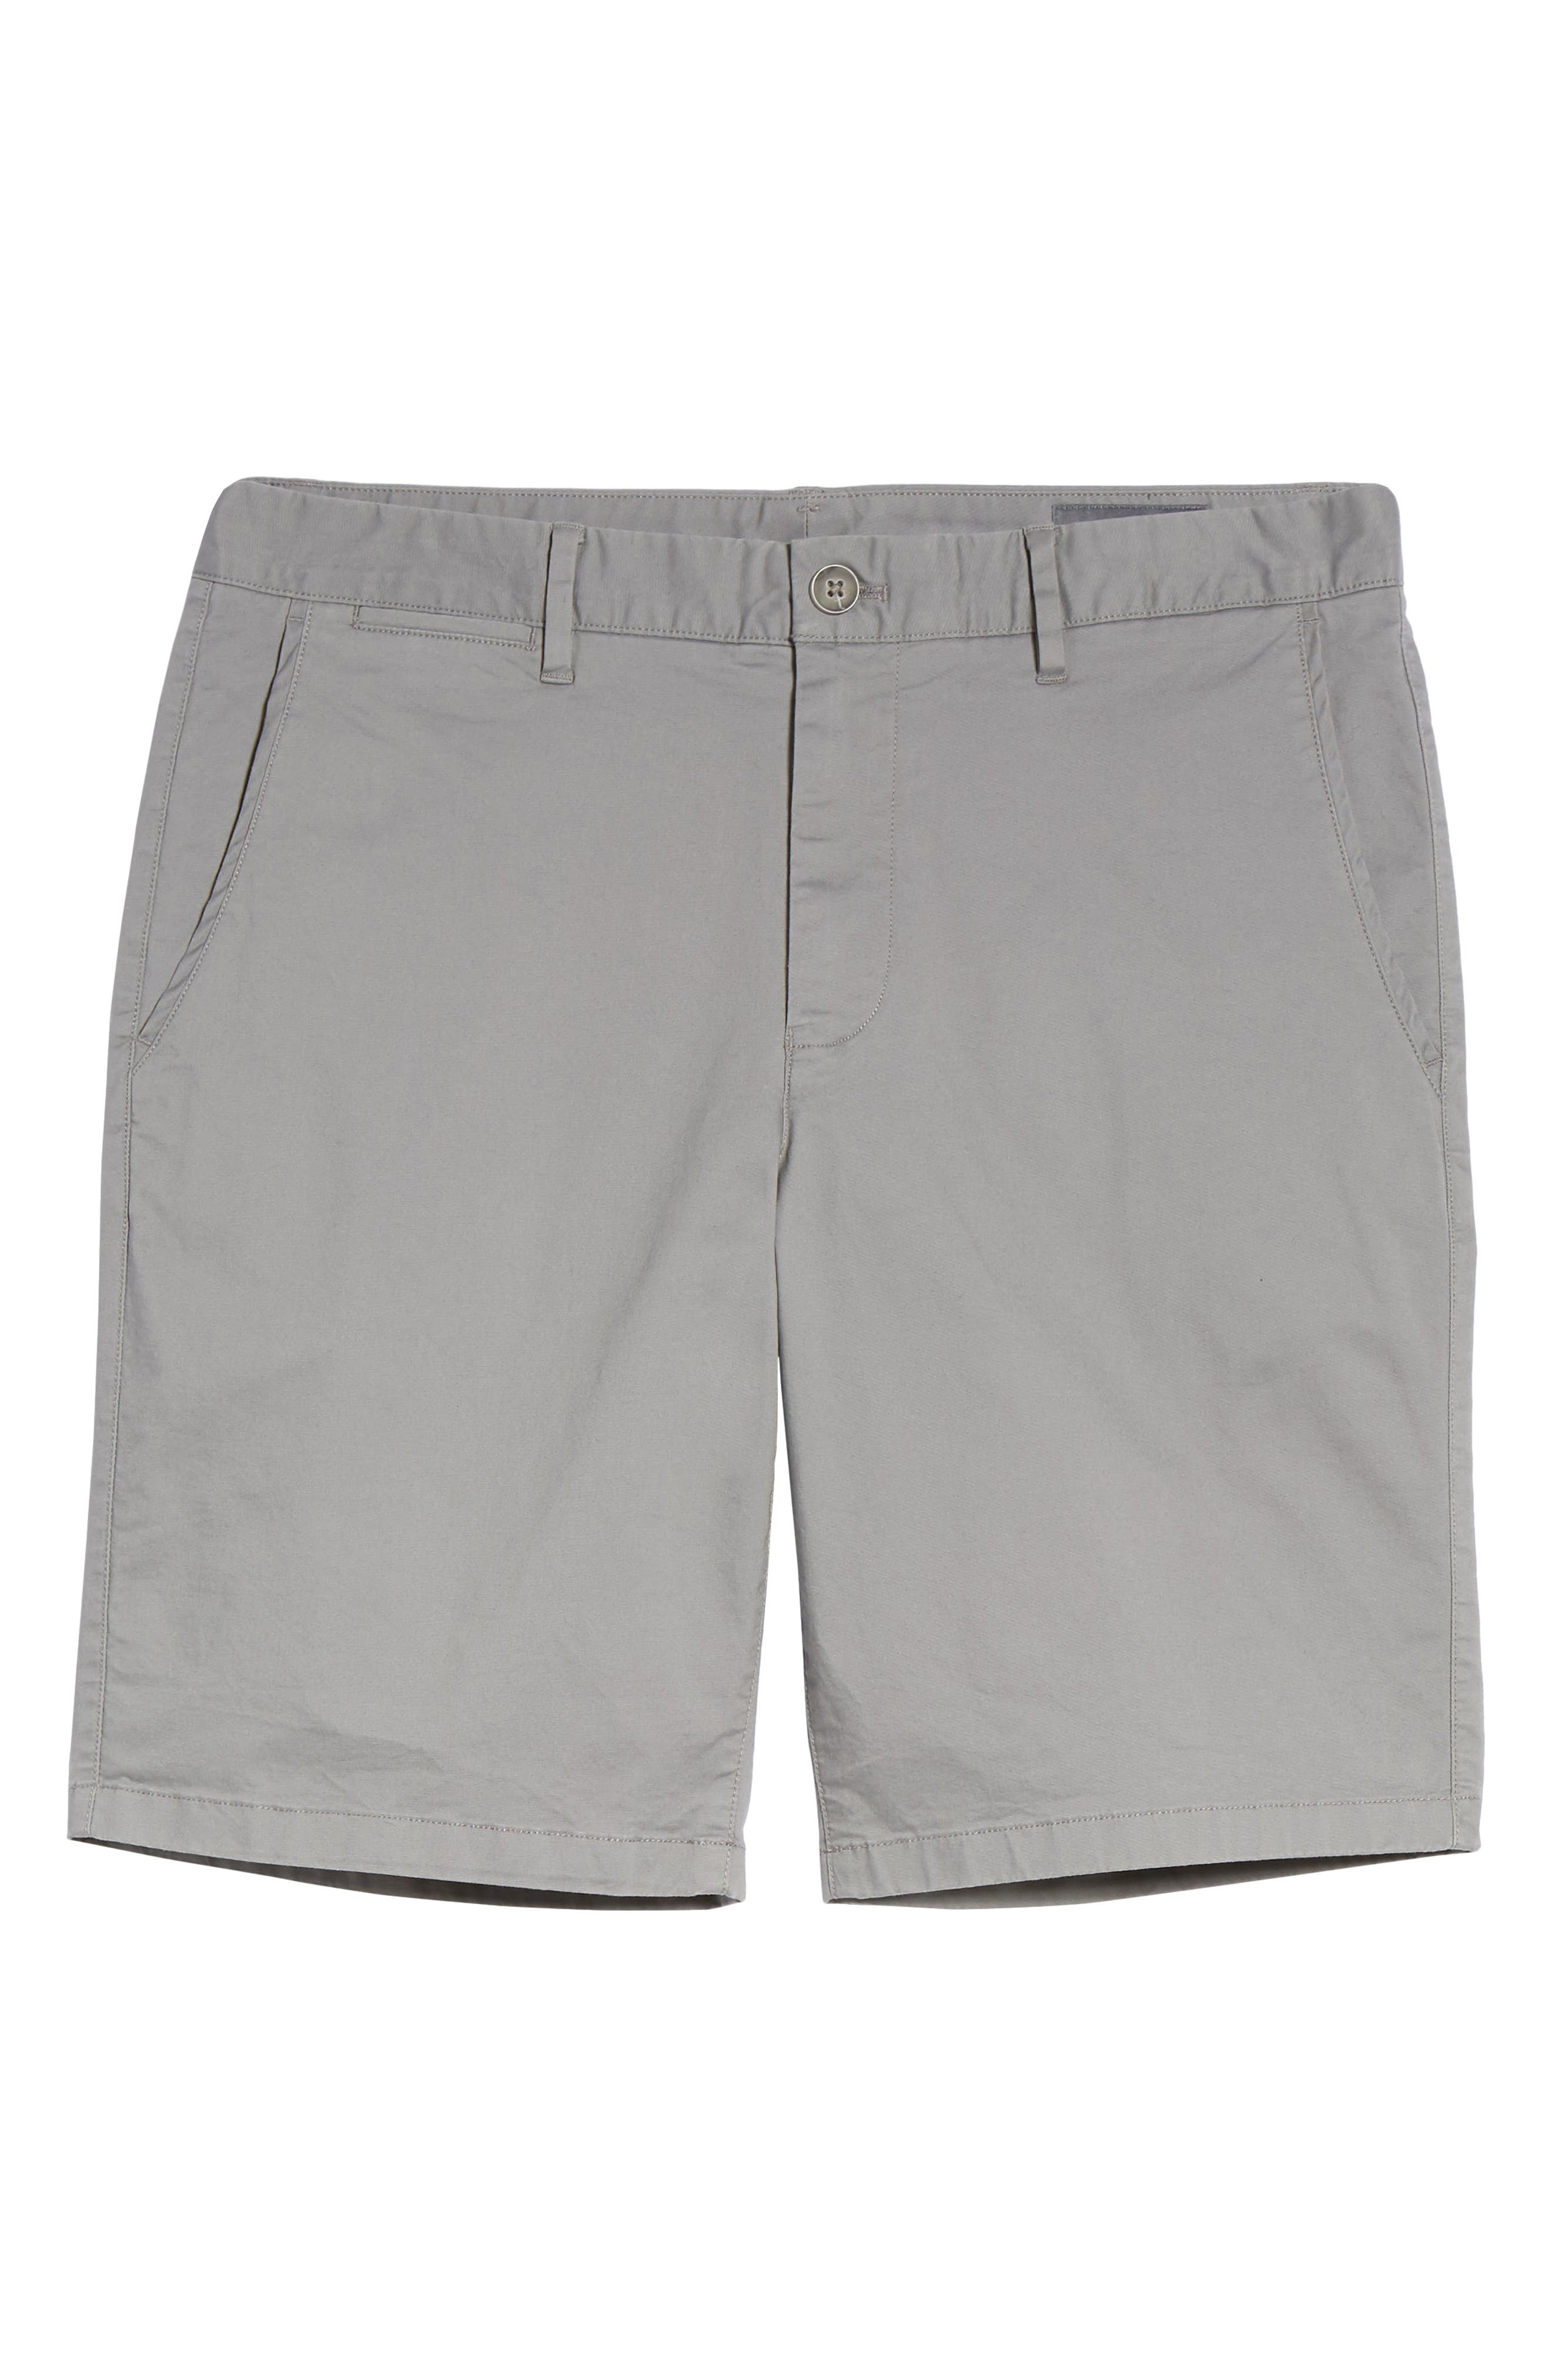 9-Inch Lightweight Stretch Chino Shorts,                             Alternate thumbnail 6, color,                             020